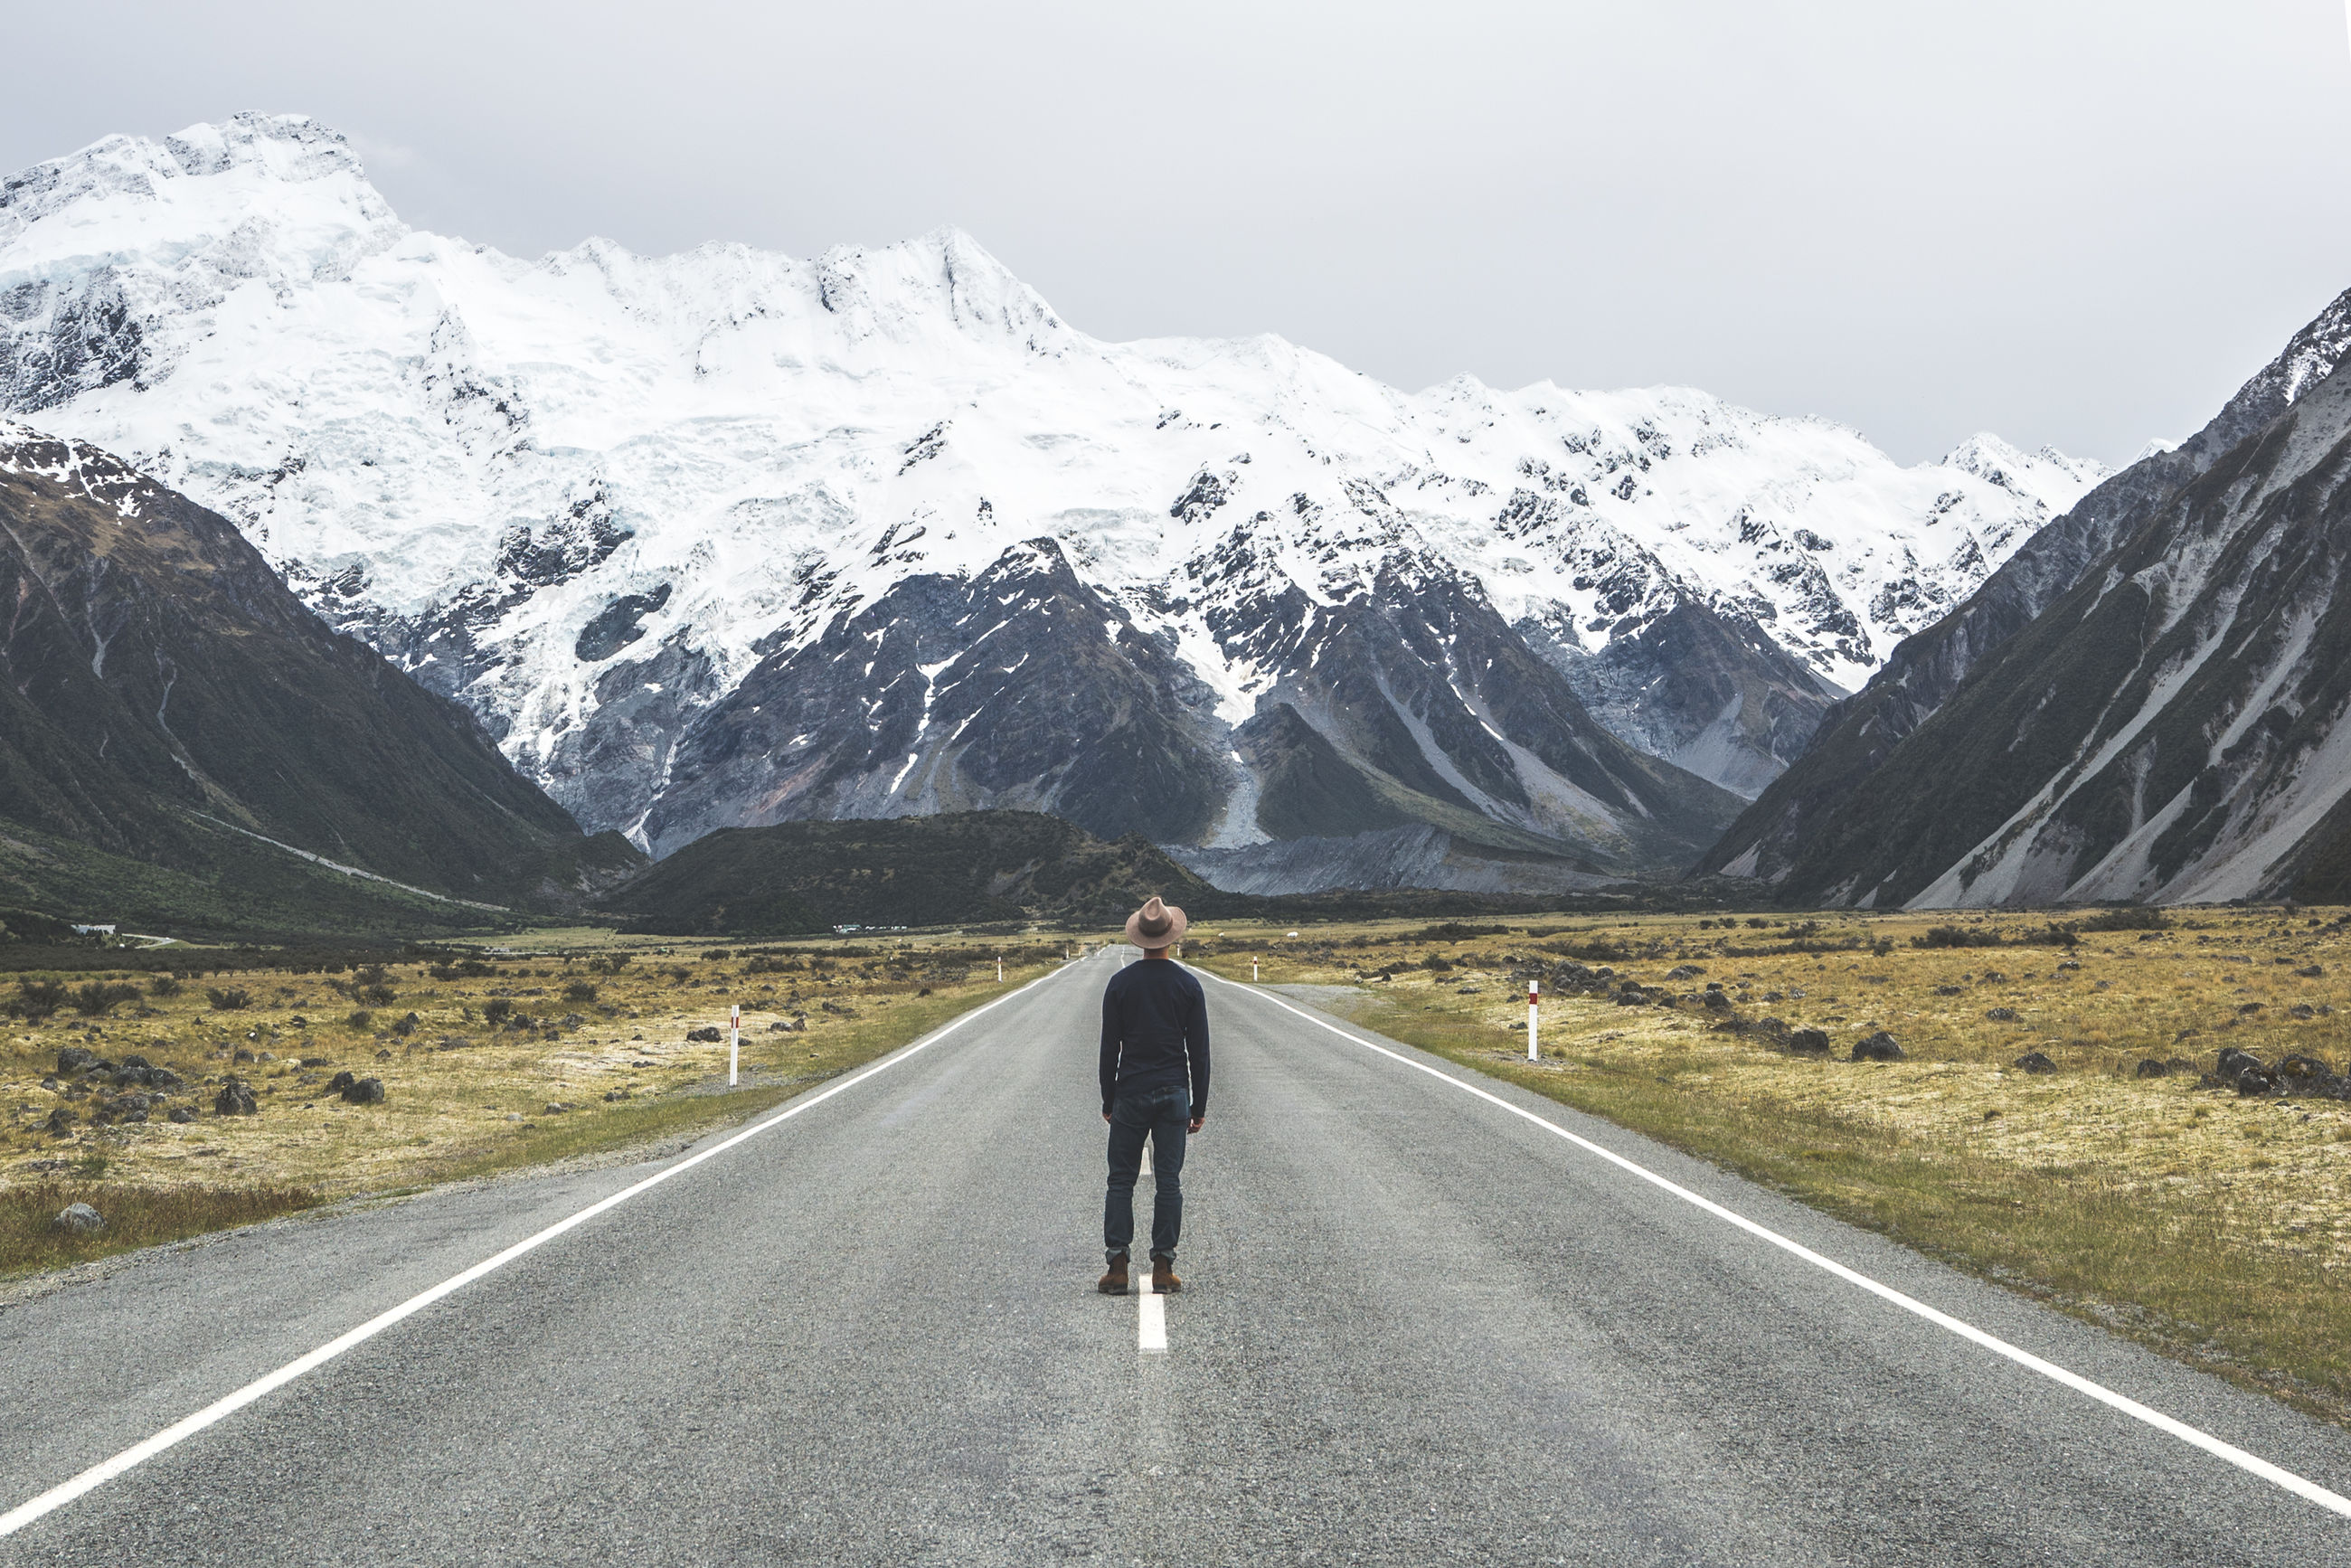 Rear view of man standing on road against snowcapped mountain